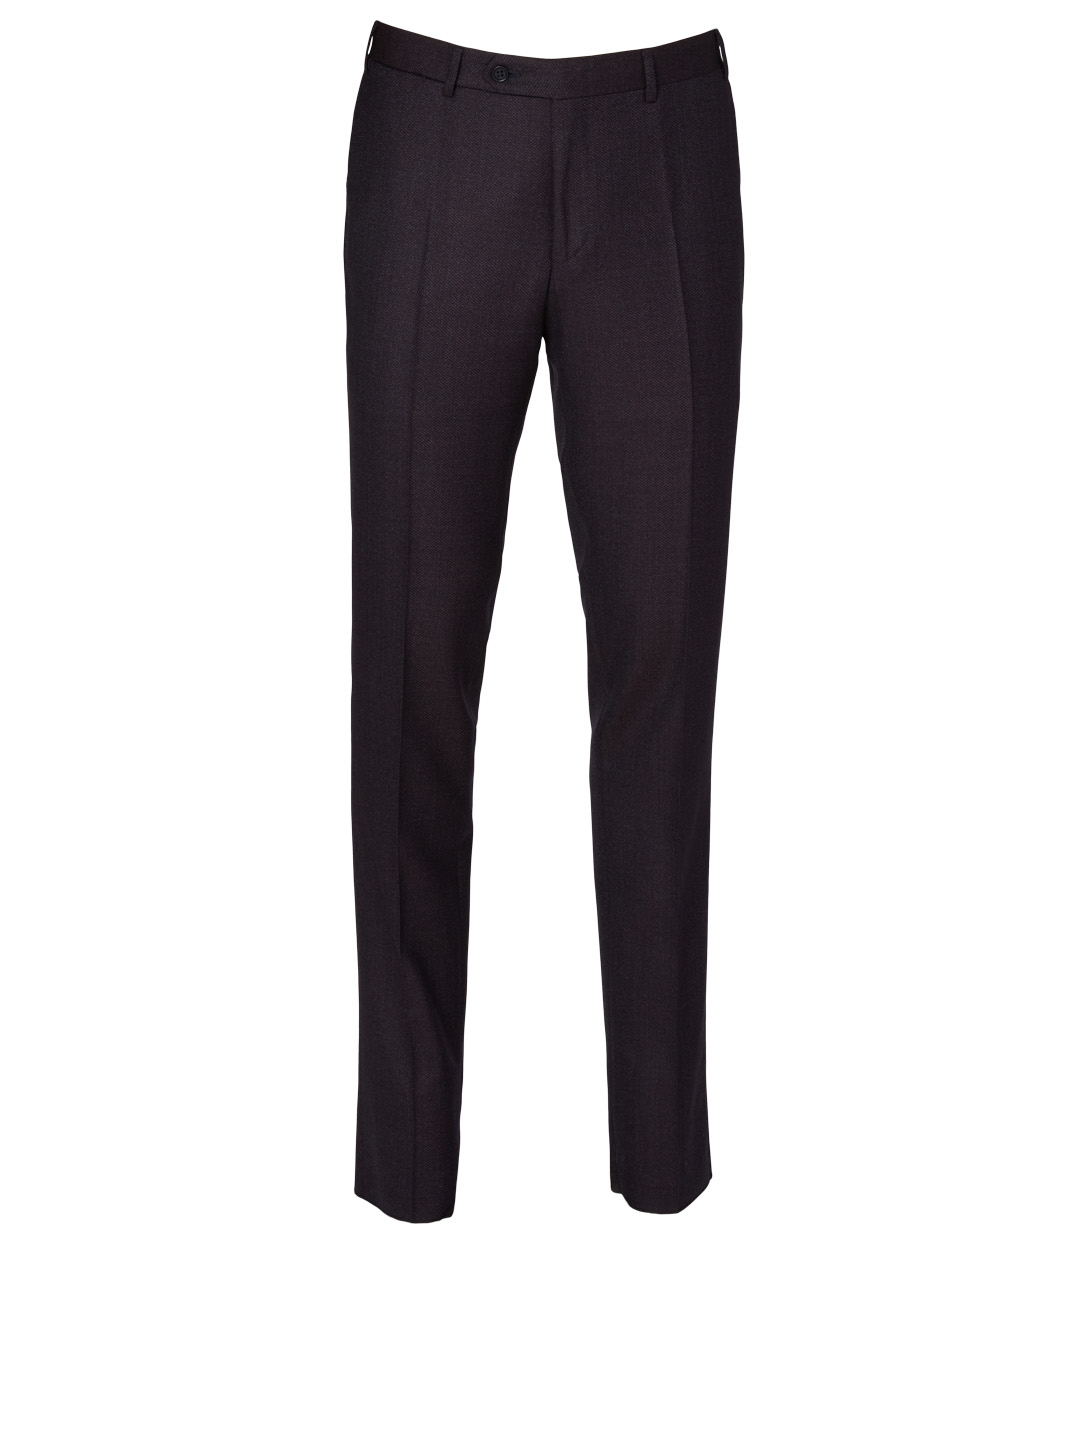 CANALI Textured Wool Pants Men's Purple